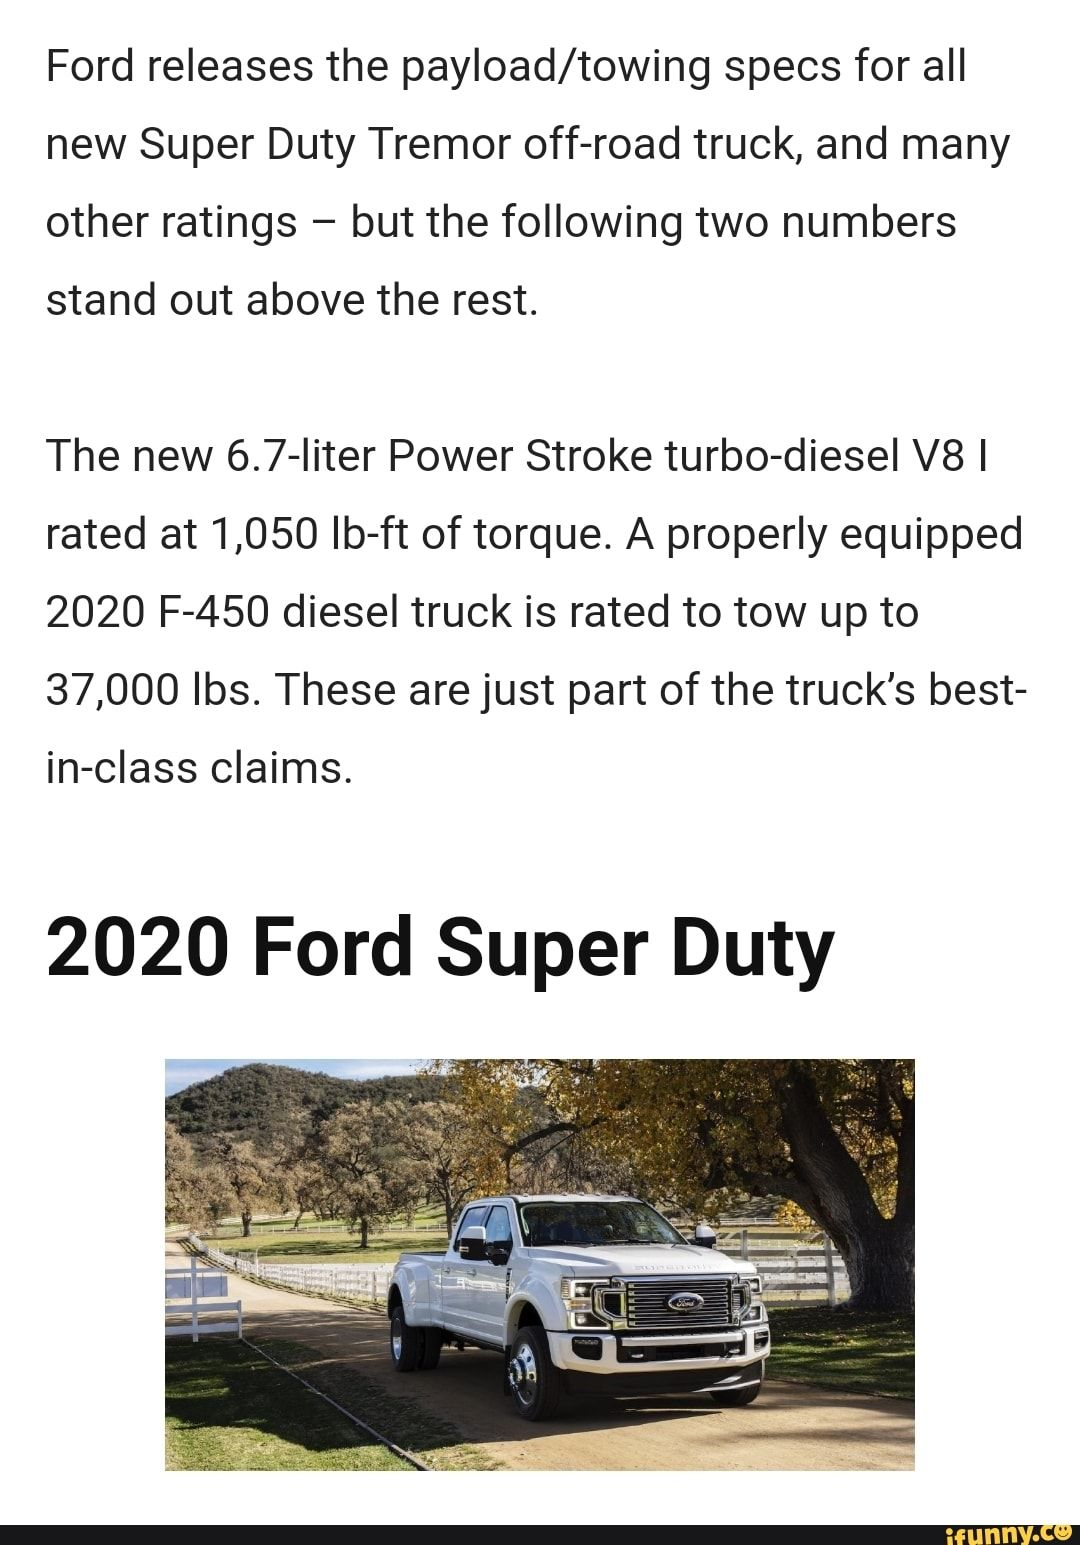 Ford releases the payload/towing specs for all new Super